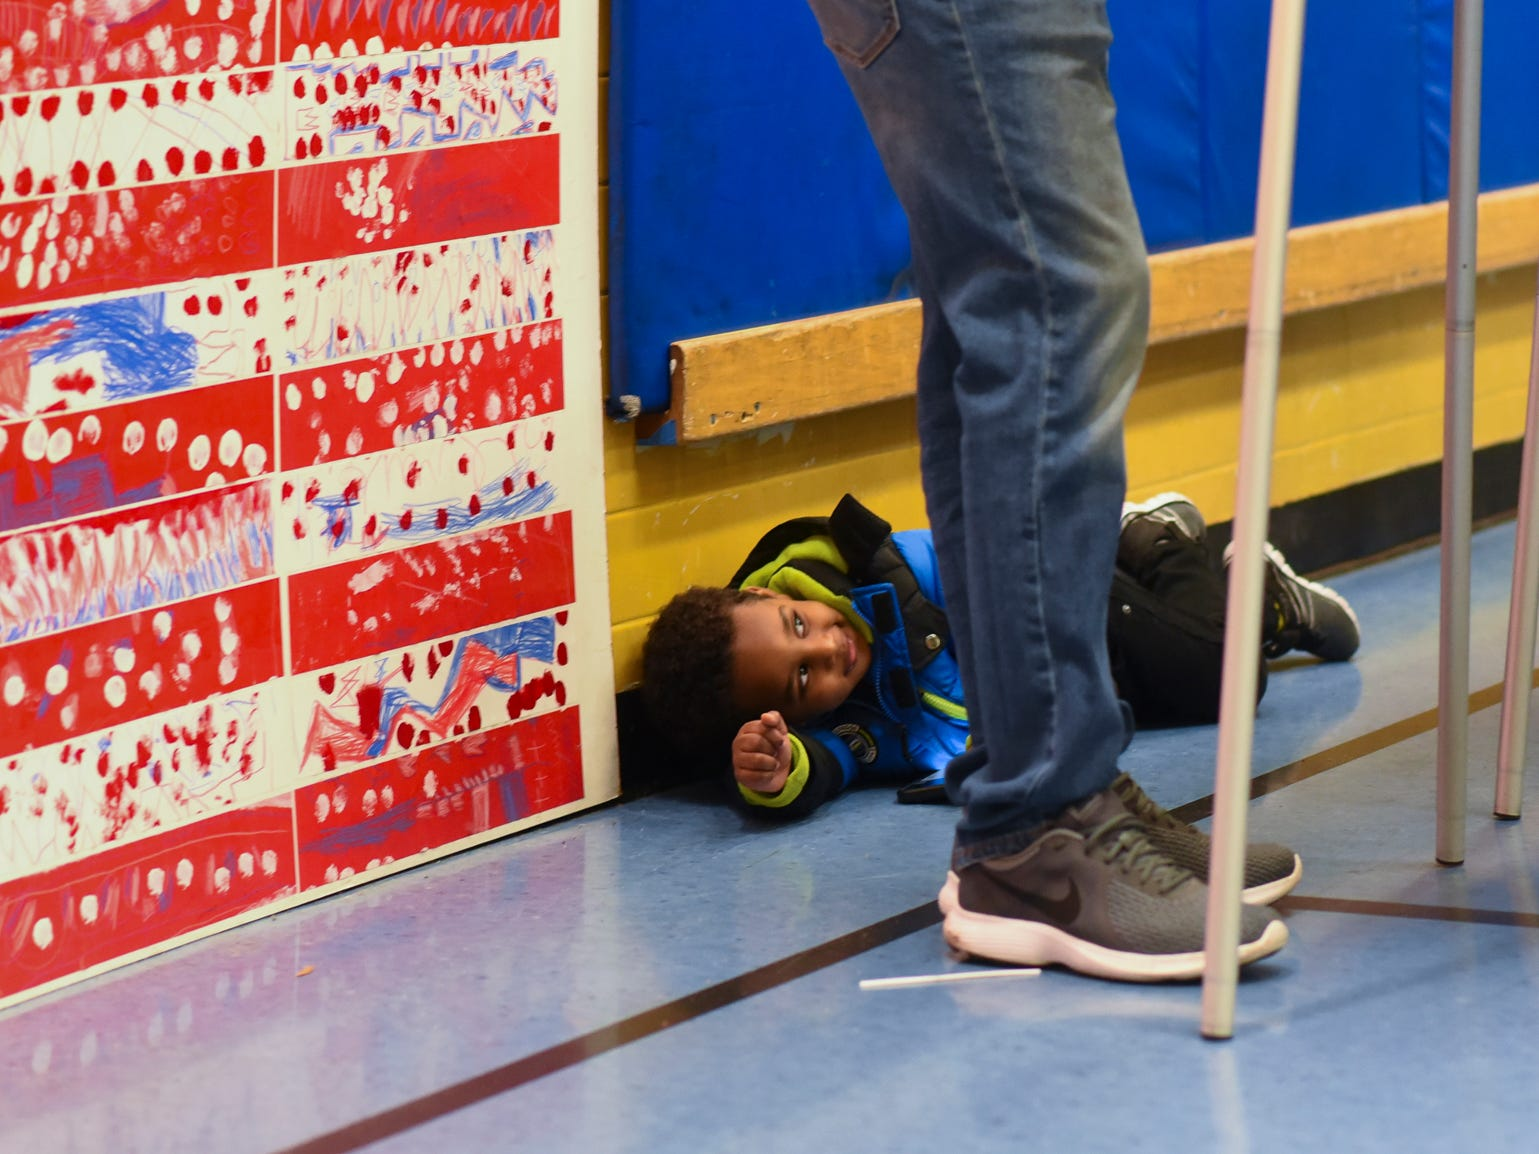 Two-year-old Abdallah Bussuri hangs out on the gymnasium floor at Willow School in Lansing while his father Adnan casts his ballot, Tuesday evening, Nov. 6, 2018, during the midterm election.